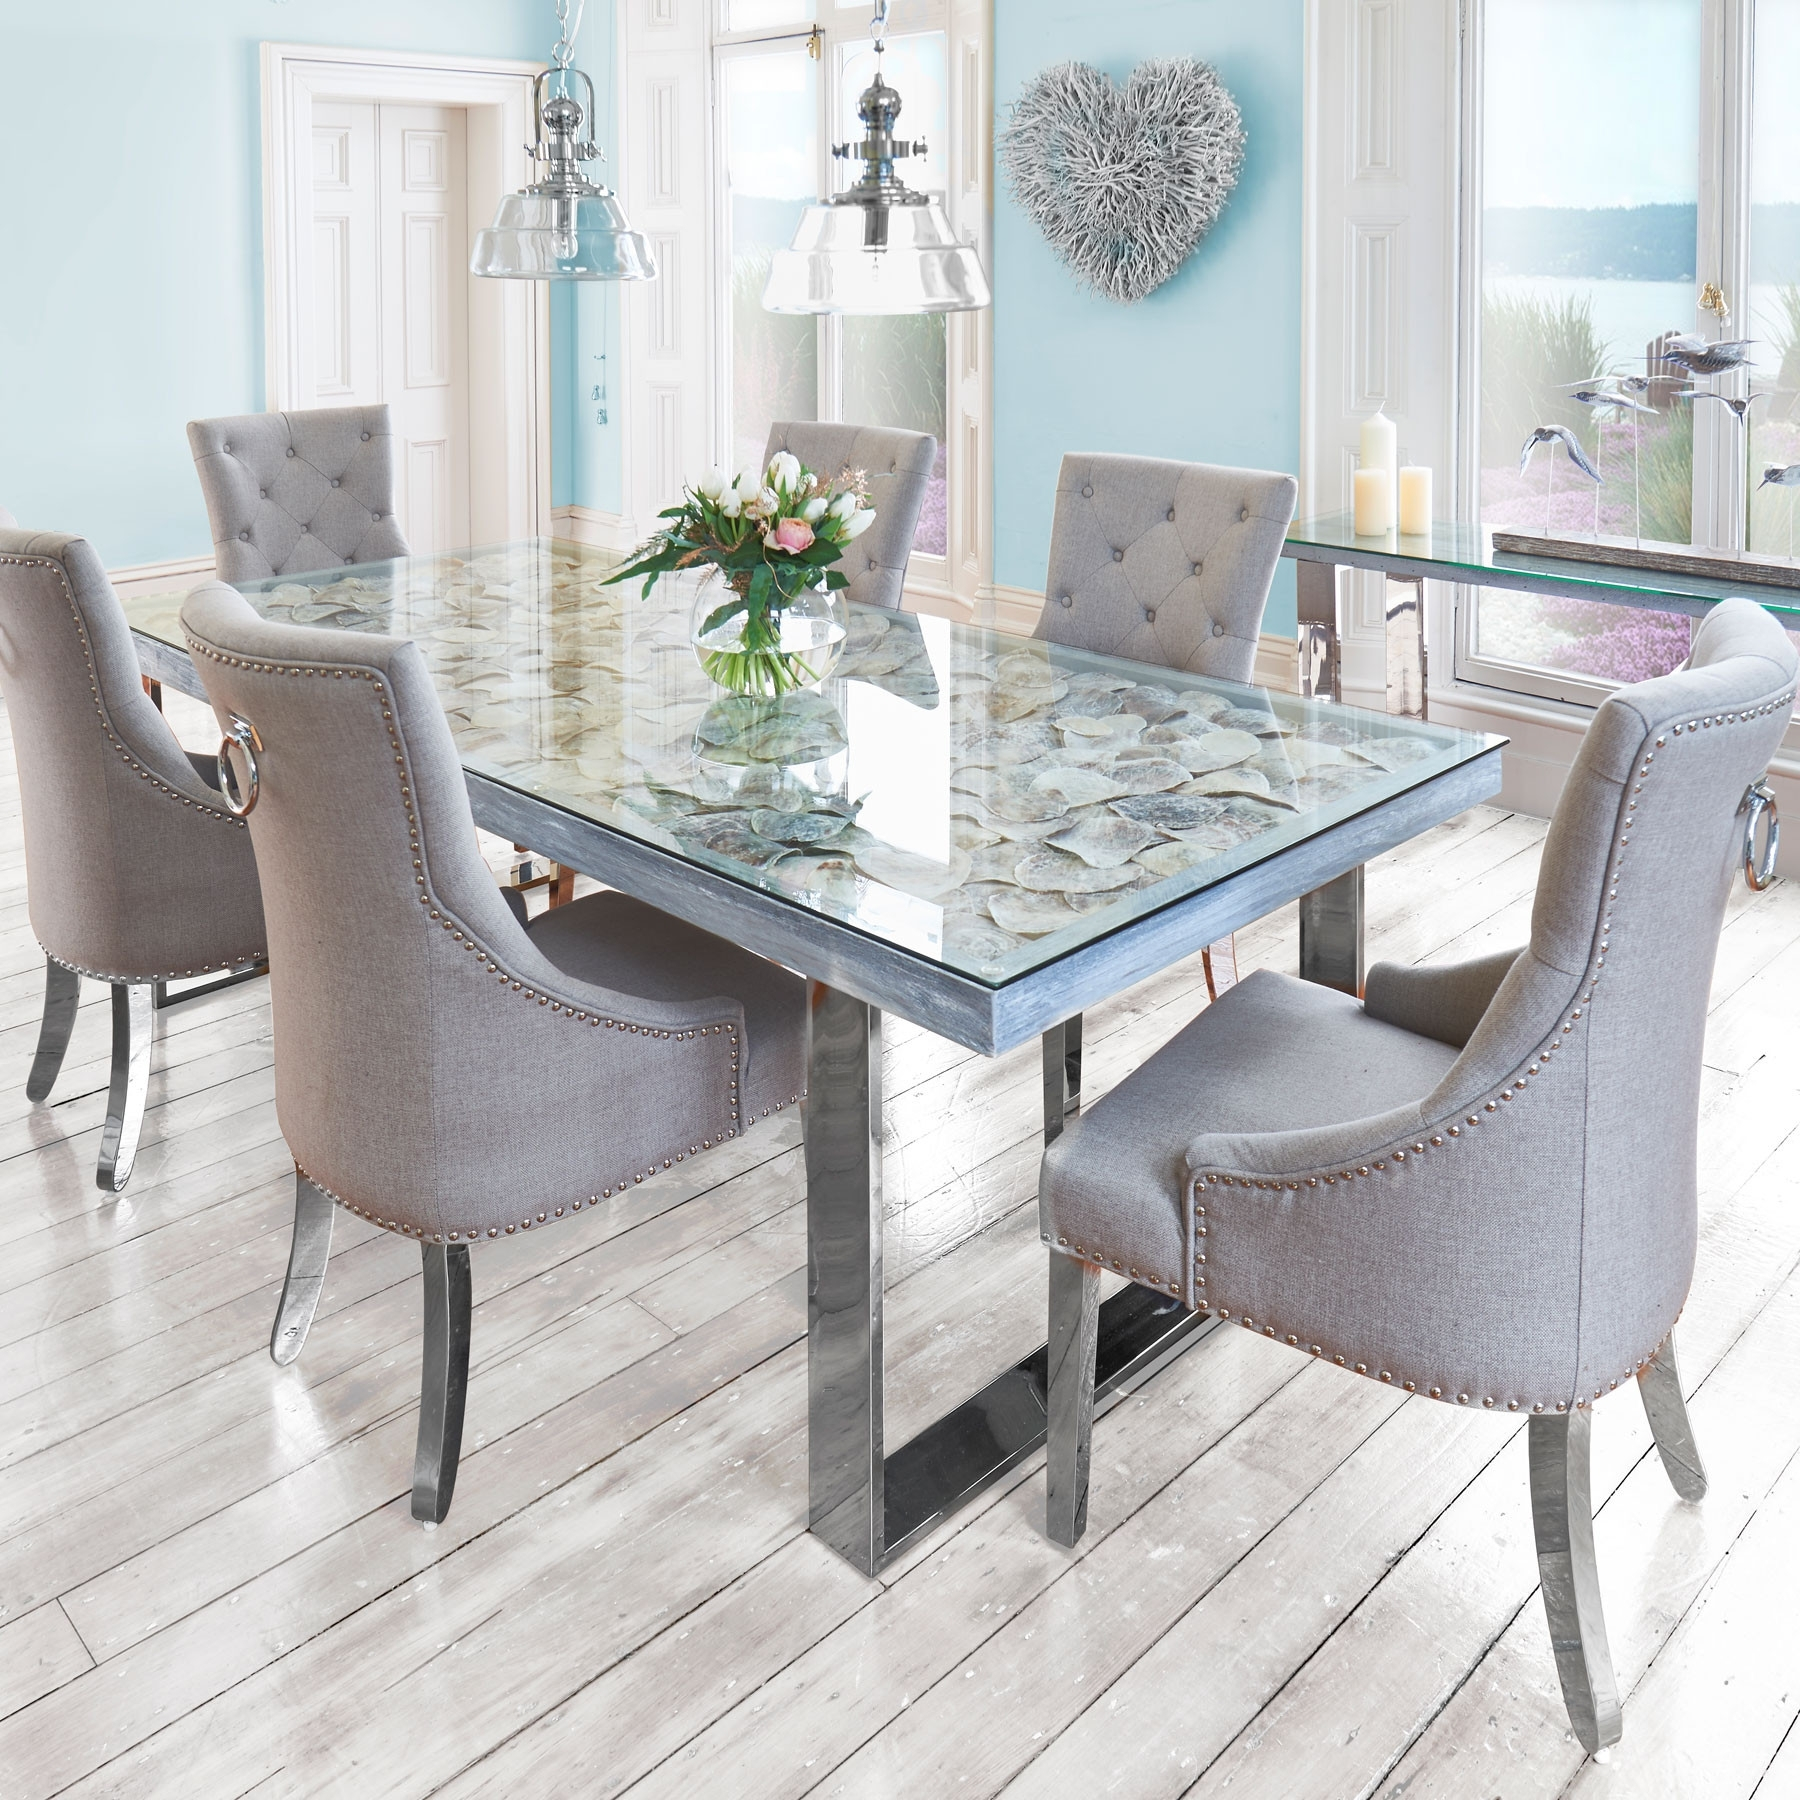 6 Chairs Dining Tables pertaining to Popular Sacramento Seashell Top Dining Table & 6 Chairs